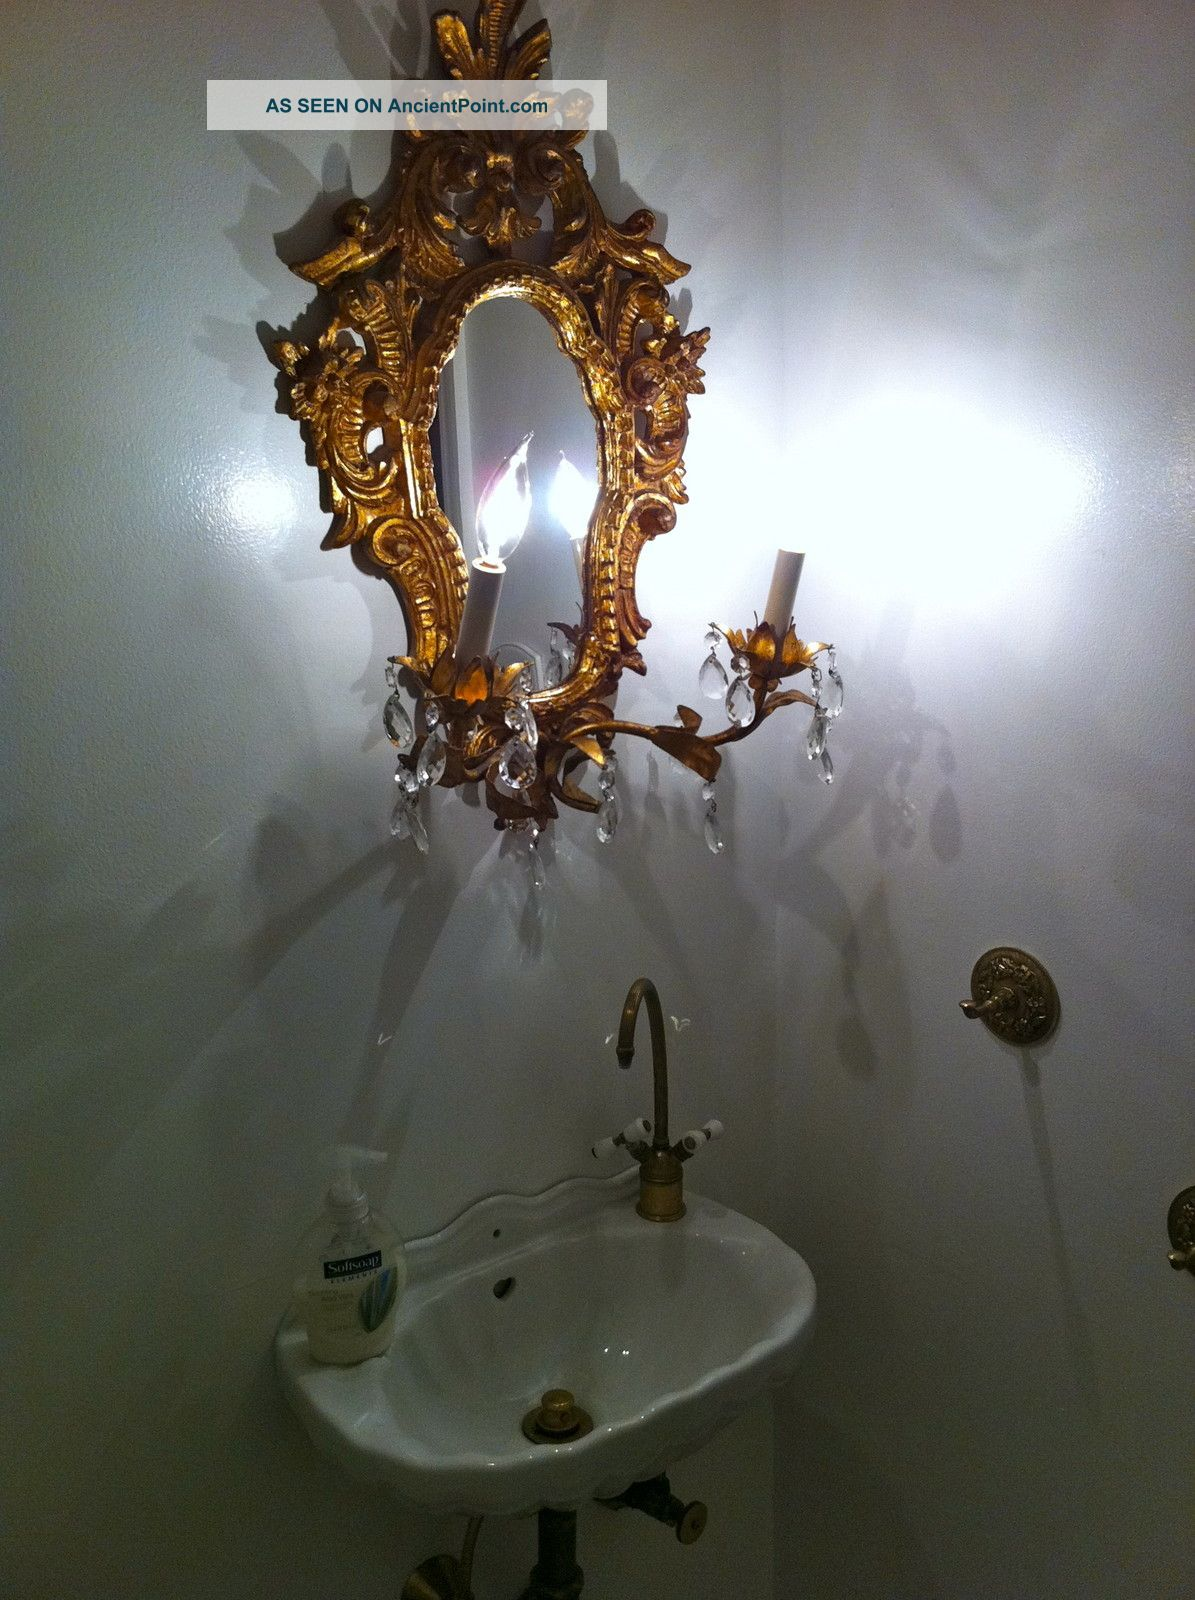 Delicate Ornate Rococco Sink With Gilded Lighted Mirror - - One Of A Kind Liberace Sinks photo